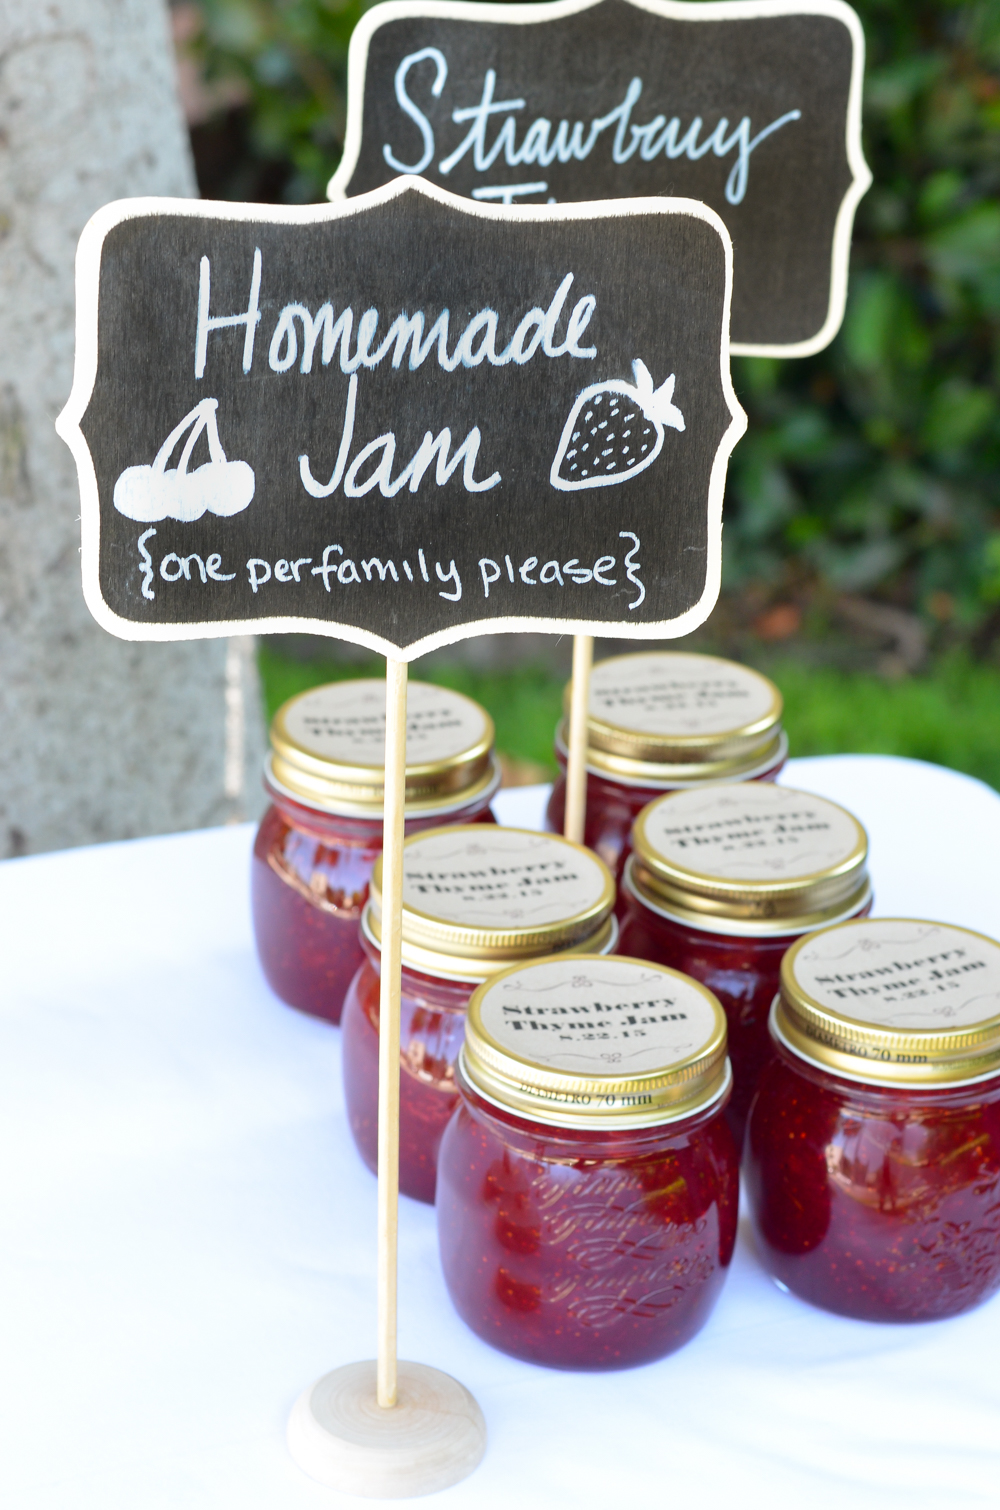 Strawberry Thyme Jam Recipe - Homemade Jam Wedding Favors - The Container Store x Luci's Morsels-3